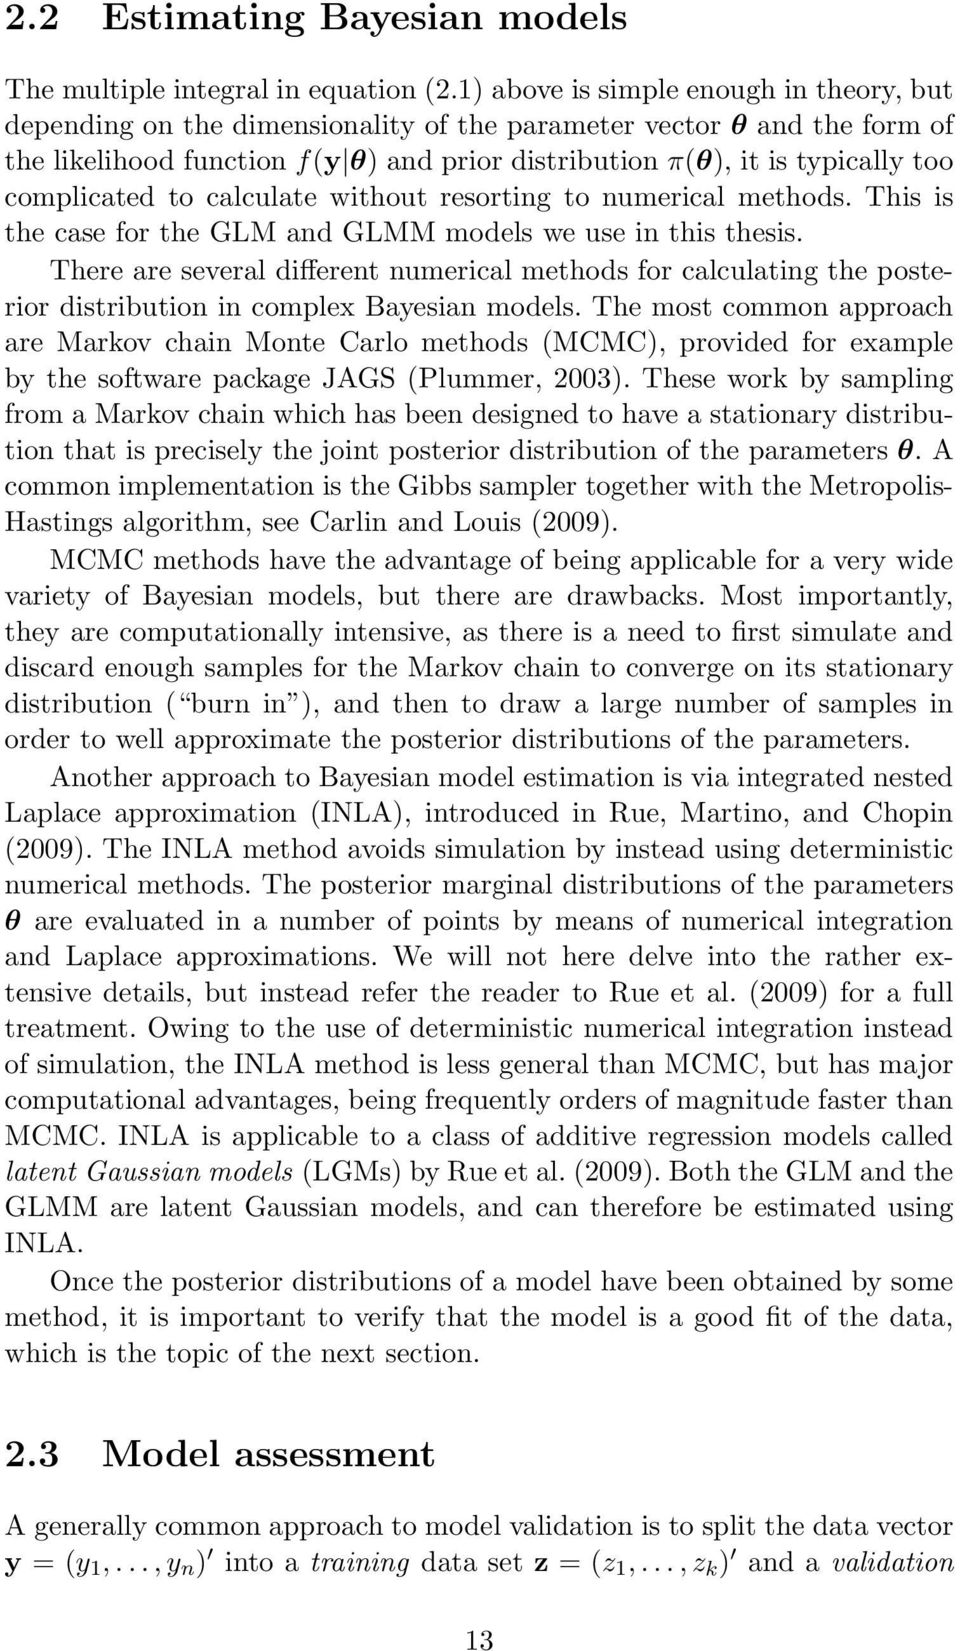 complicated to calculate without resorting to numerical methods. This is the case for the GLM and GLMM models we use in this thesis.